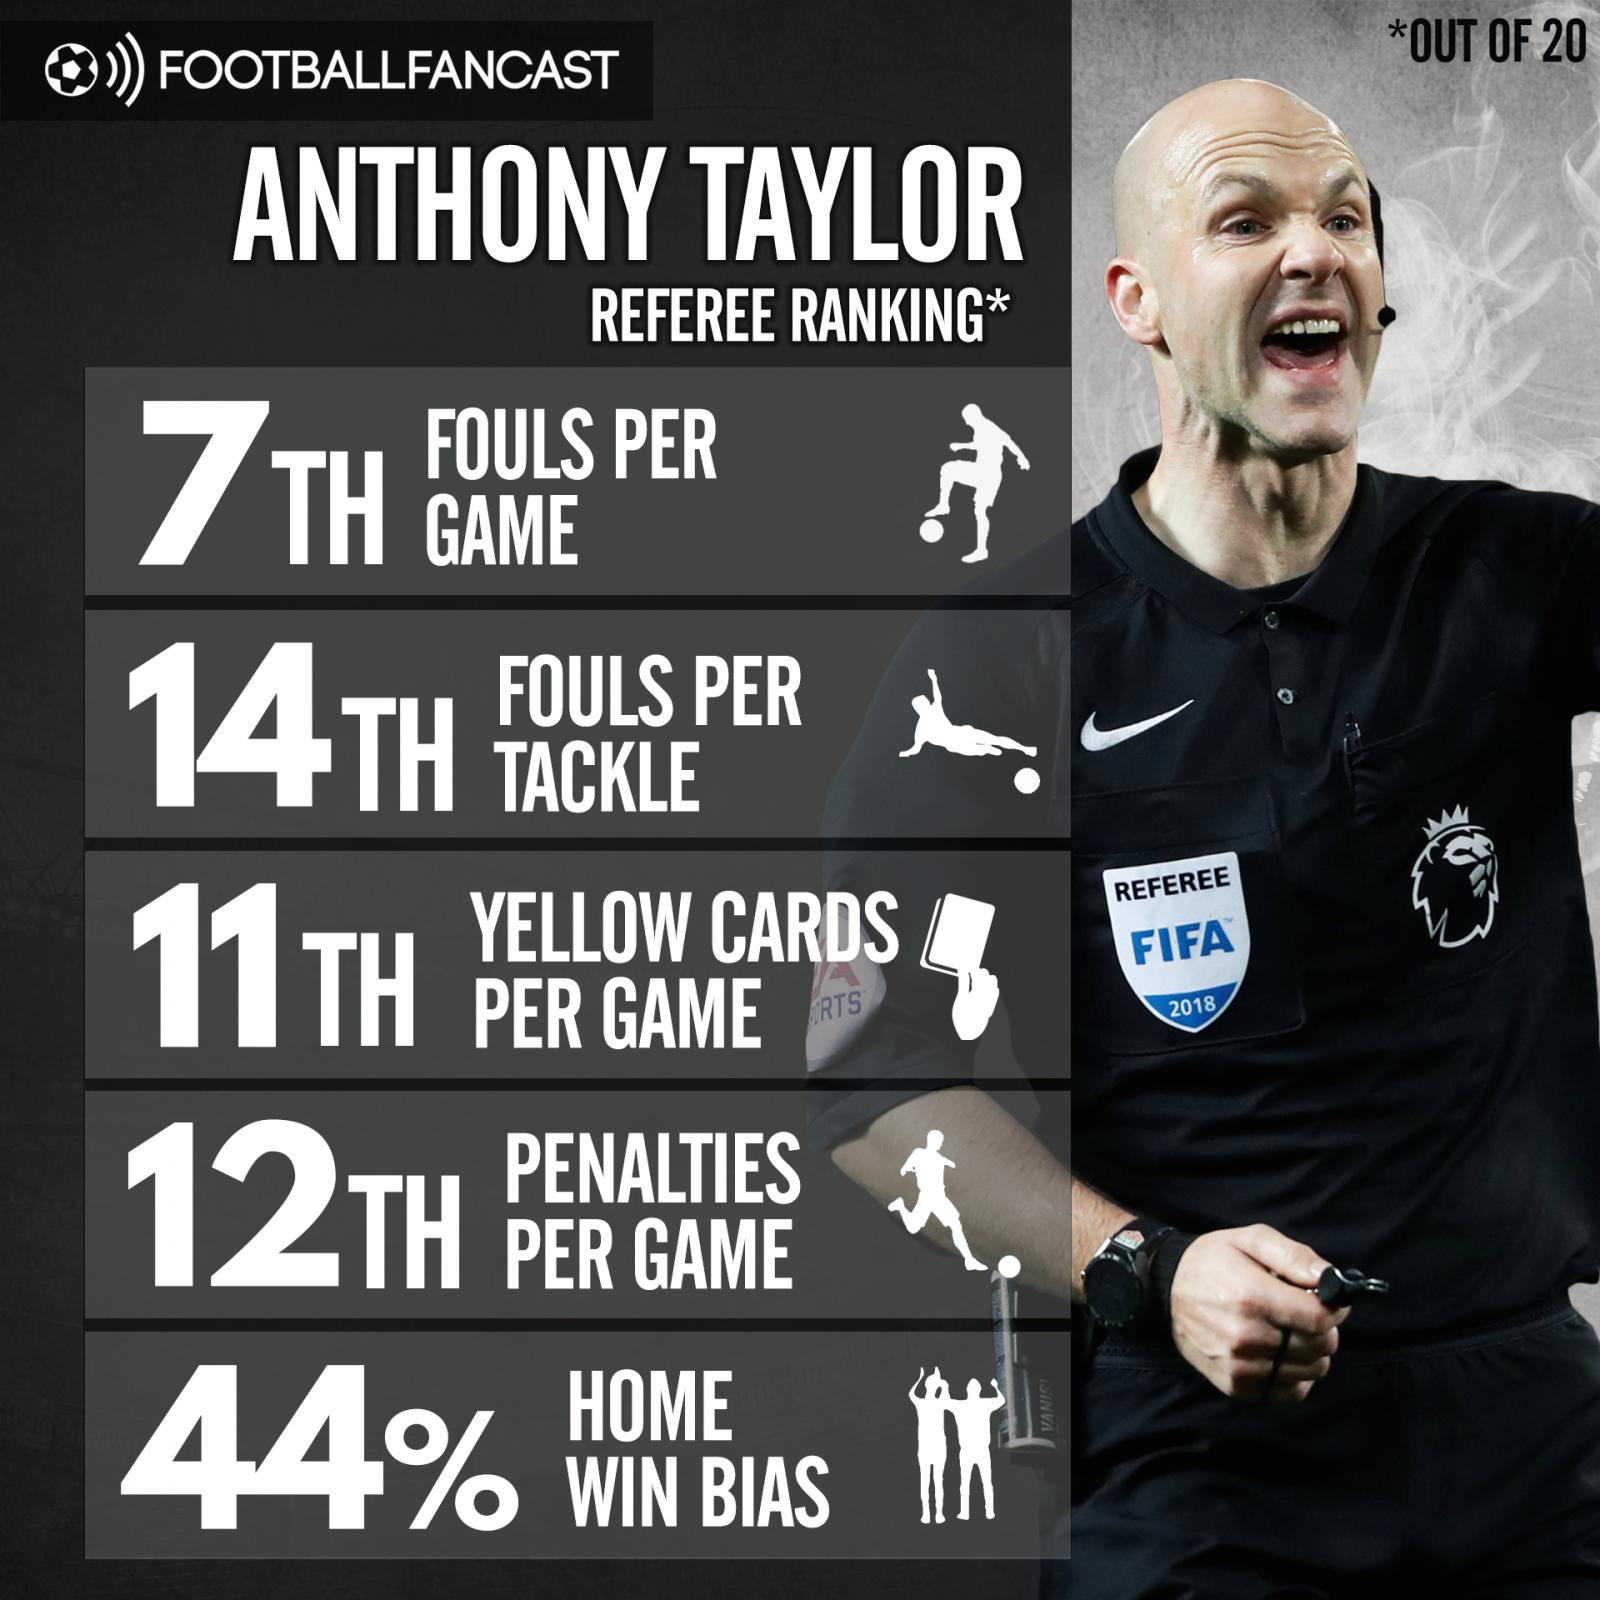 Anthony Taylor's referee stats this season